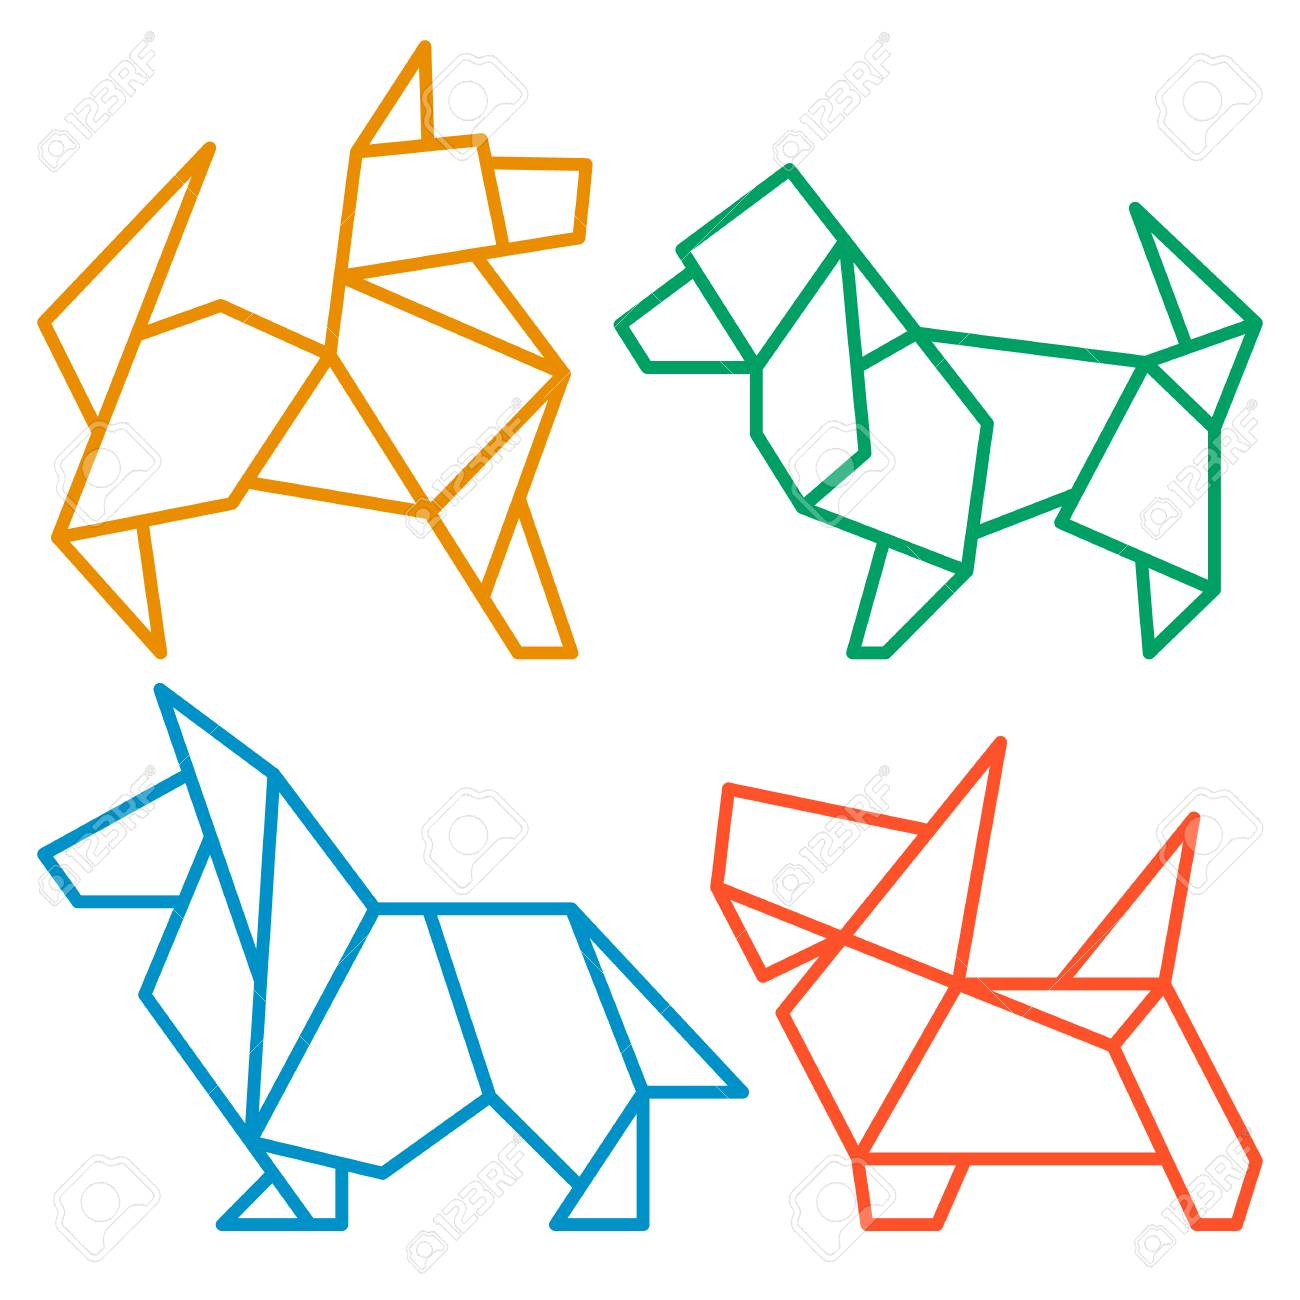 How to Make an Origami Dog Step by Step Instructions | Free ... | 1300x1300